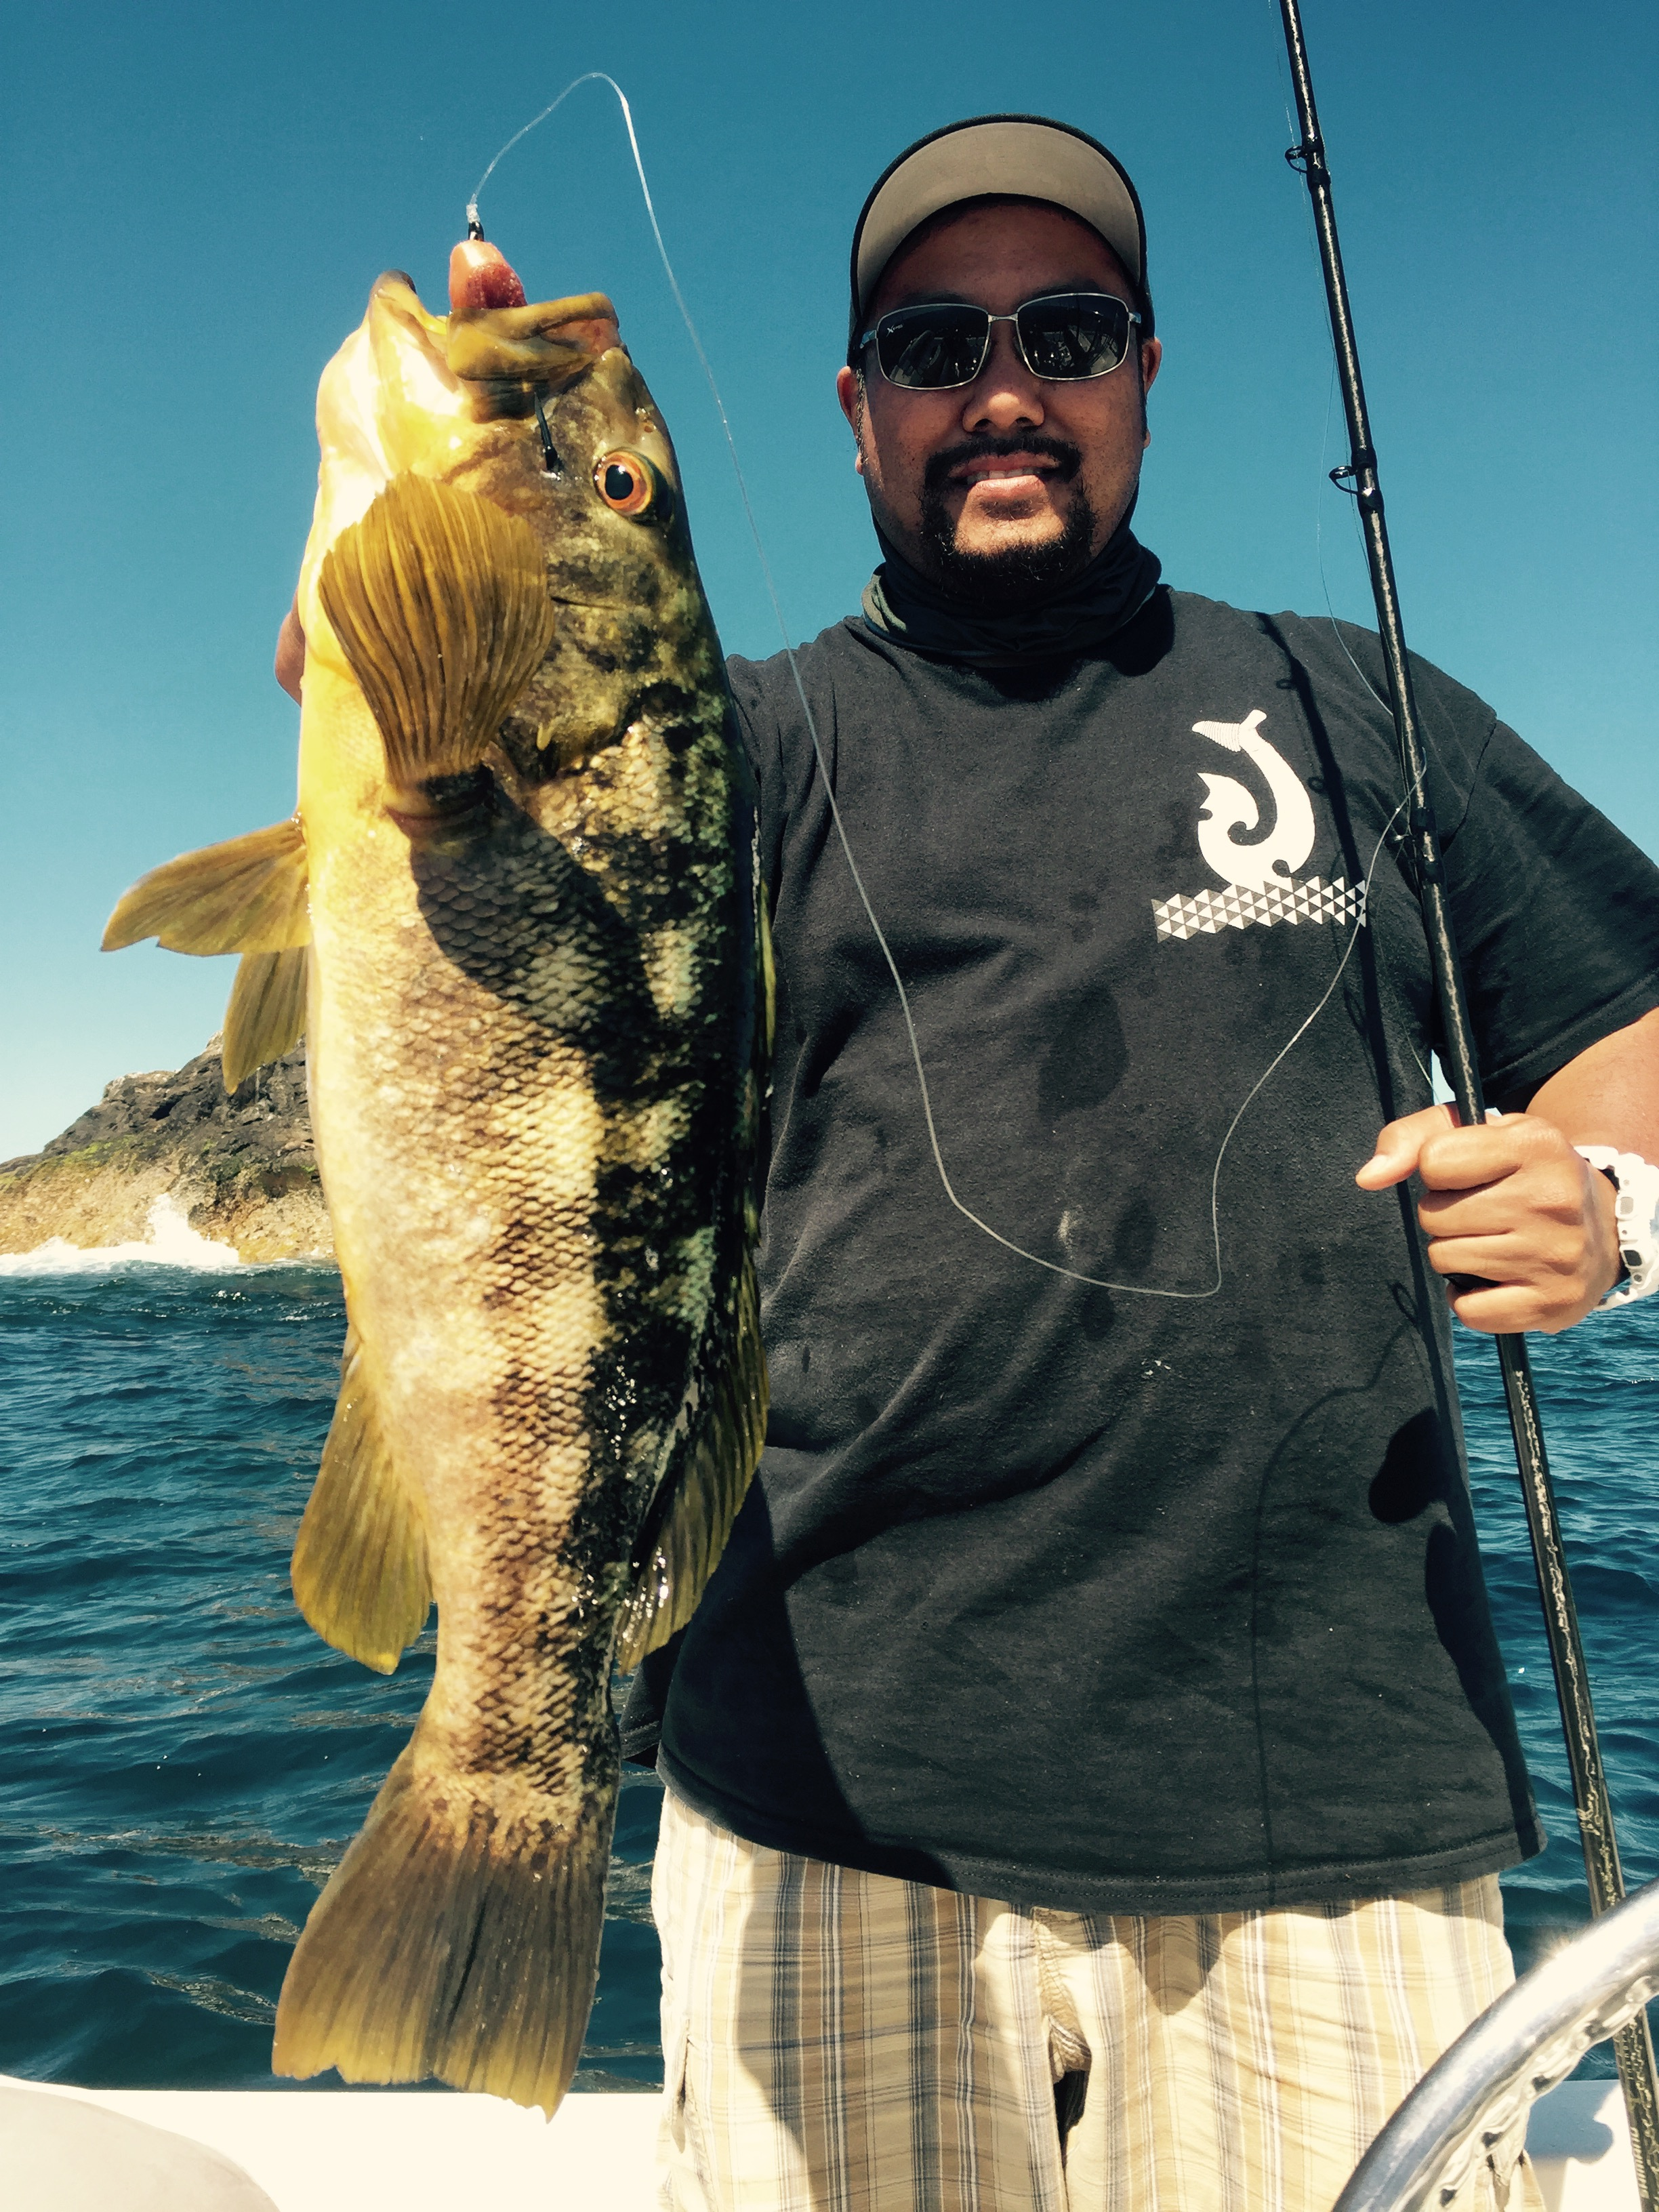 Not only did David get quantity, he got all the quality bass also! Another nice one on the weedless!